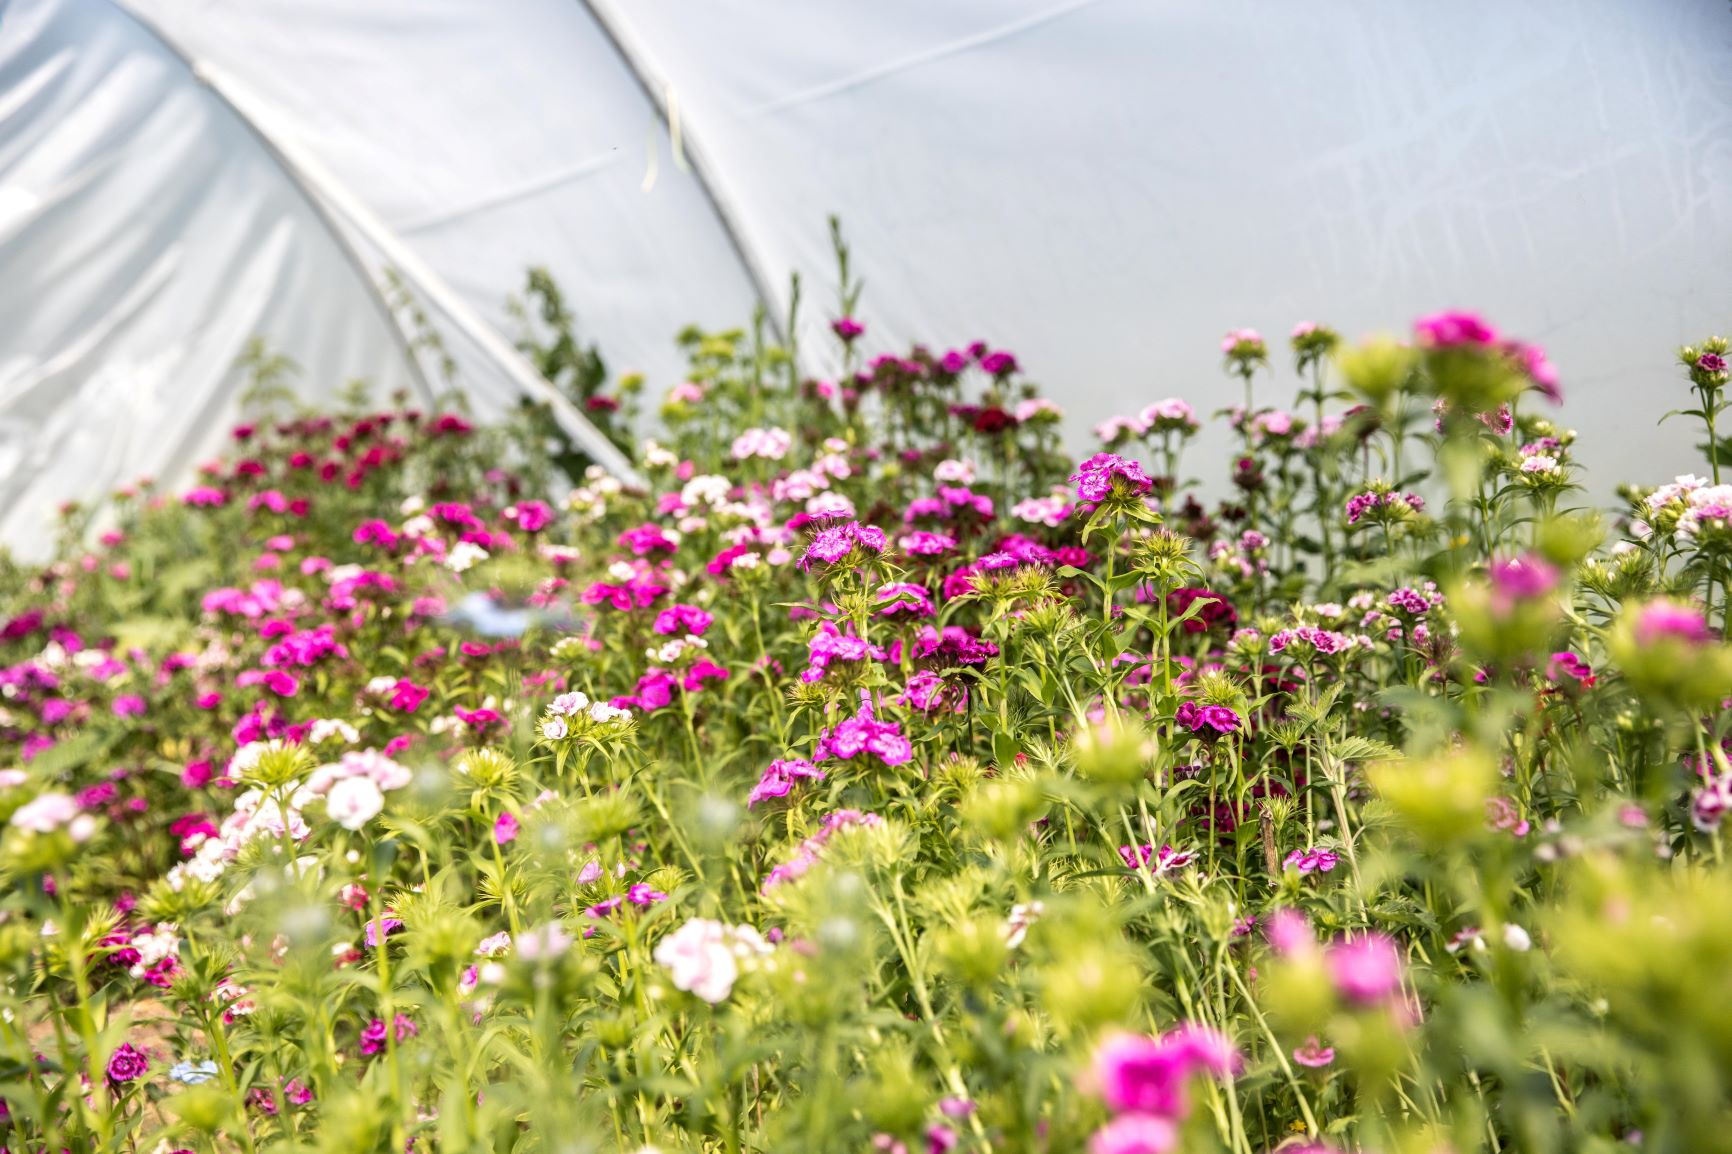 A beautiful crop of sweet williams in the polytunnel at Sweetpeas and Sunflowers